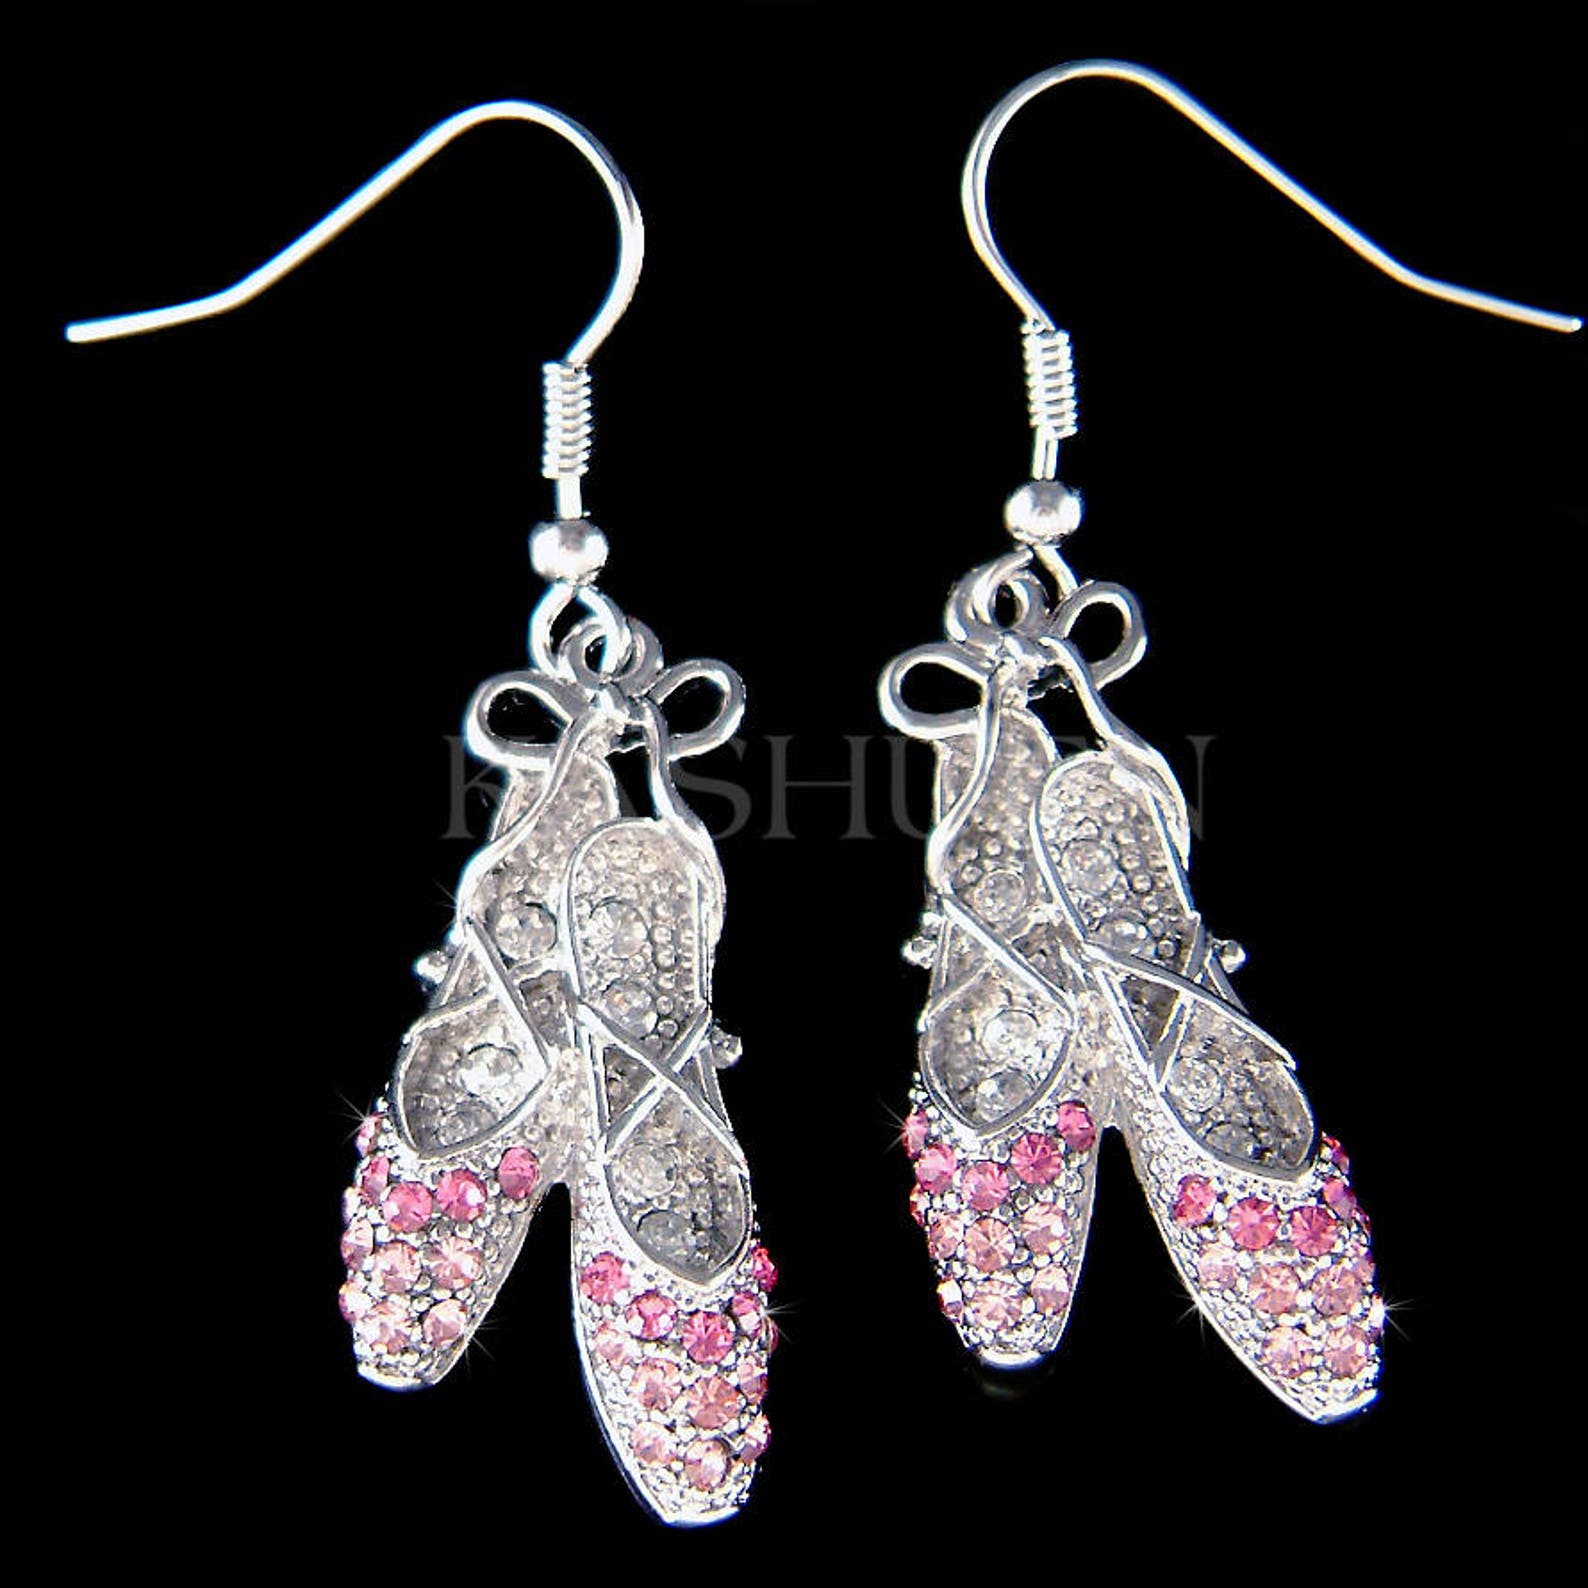 pink swarovski crystal ballerina shoes slippers ballet dance pierced earrings jewelry christmas gift new for the nutcracker swan